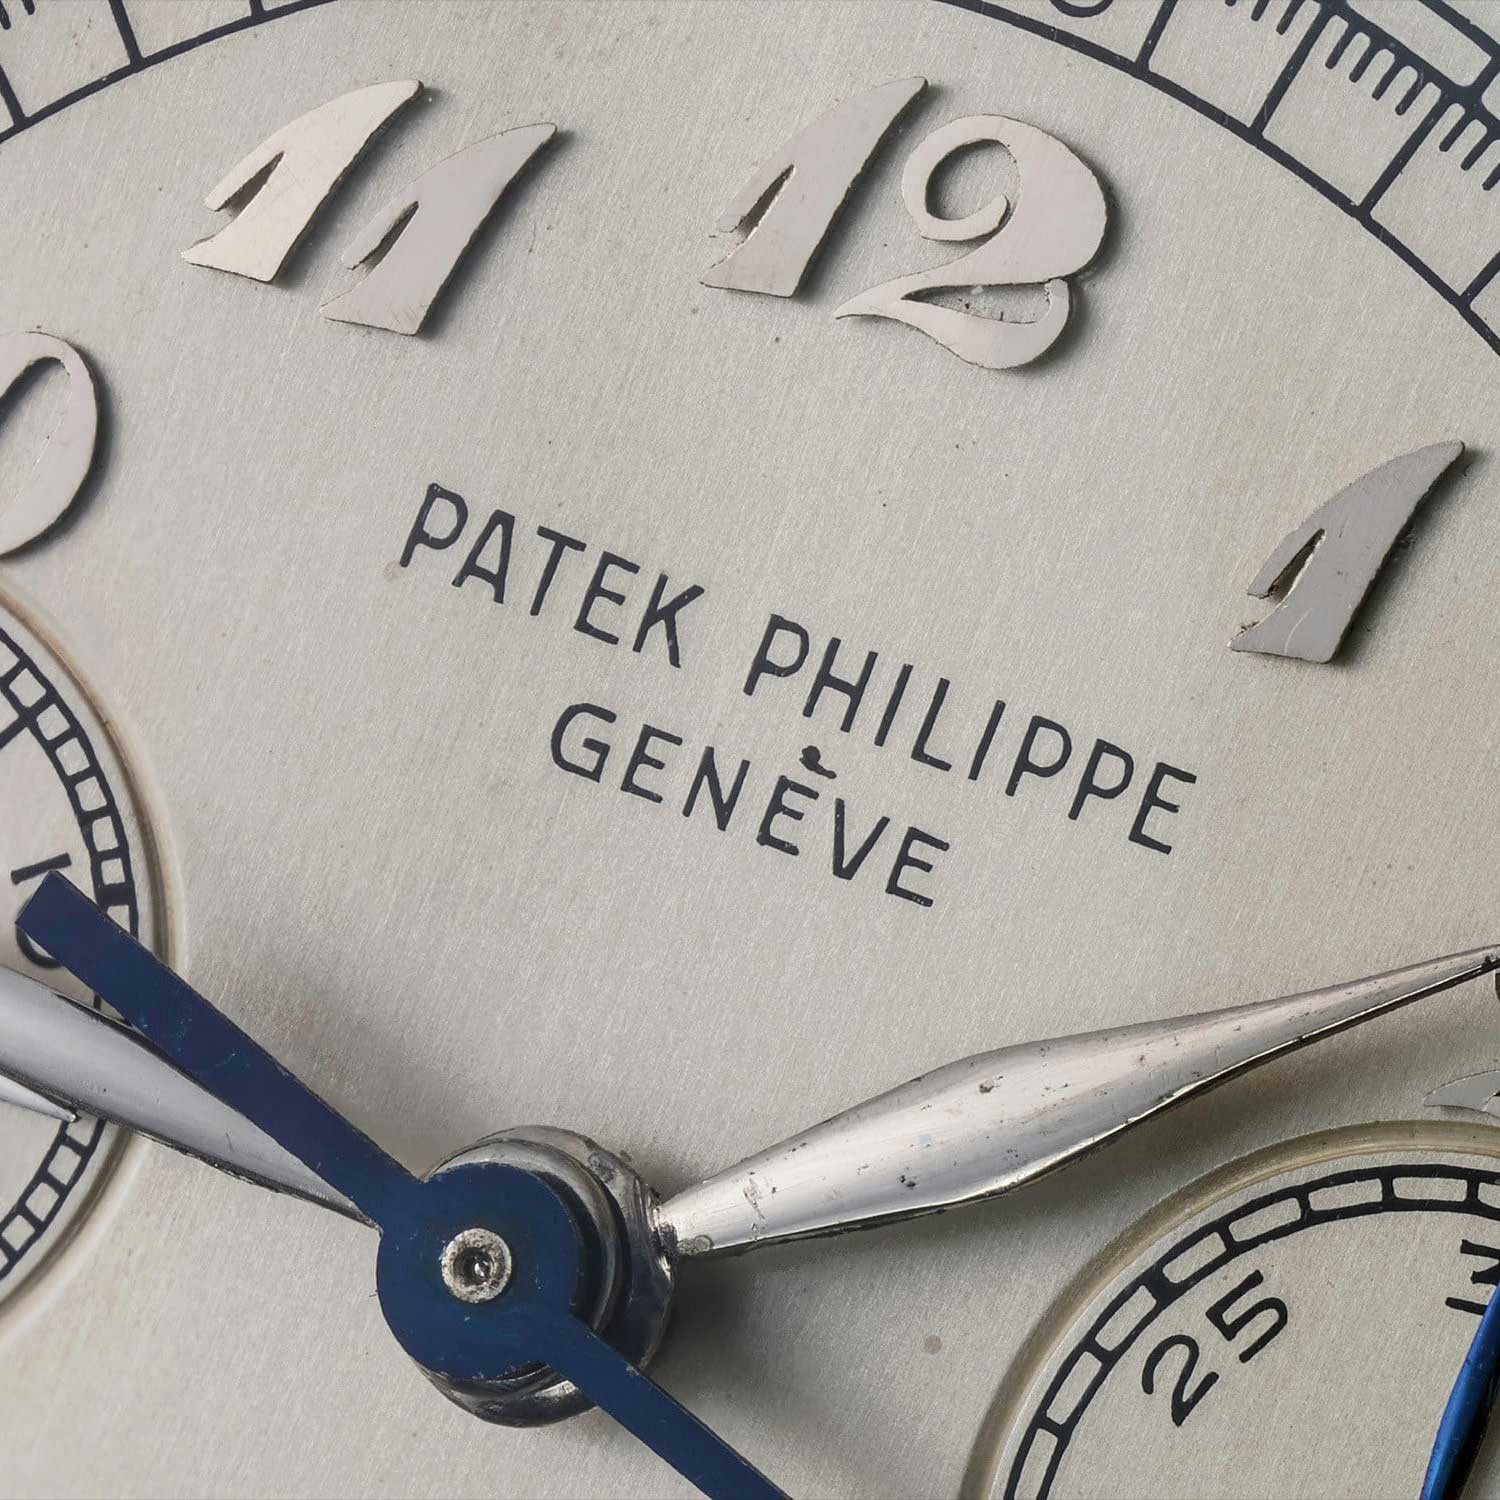 1950 Dial details on the Patek Philippe chronograph ref. 1463 in steel with Breguet numerals (Image: phillipswatches.com)